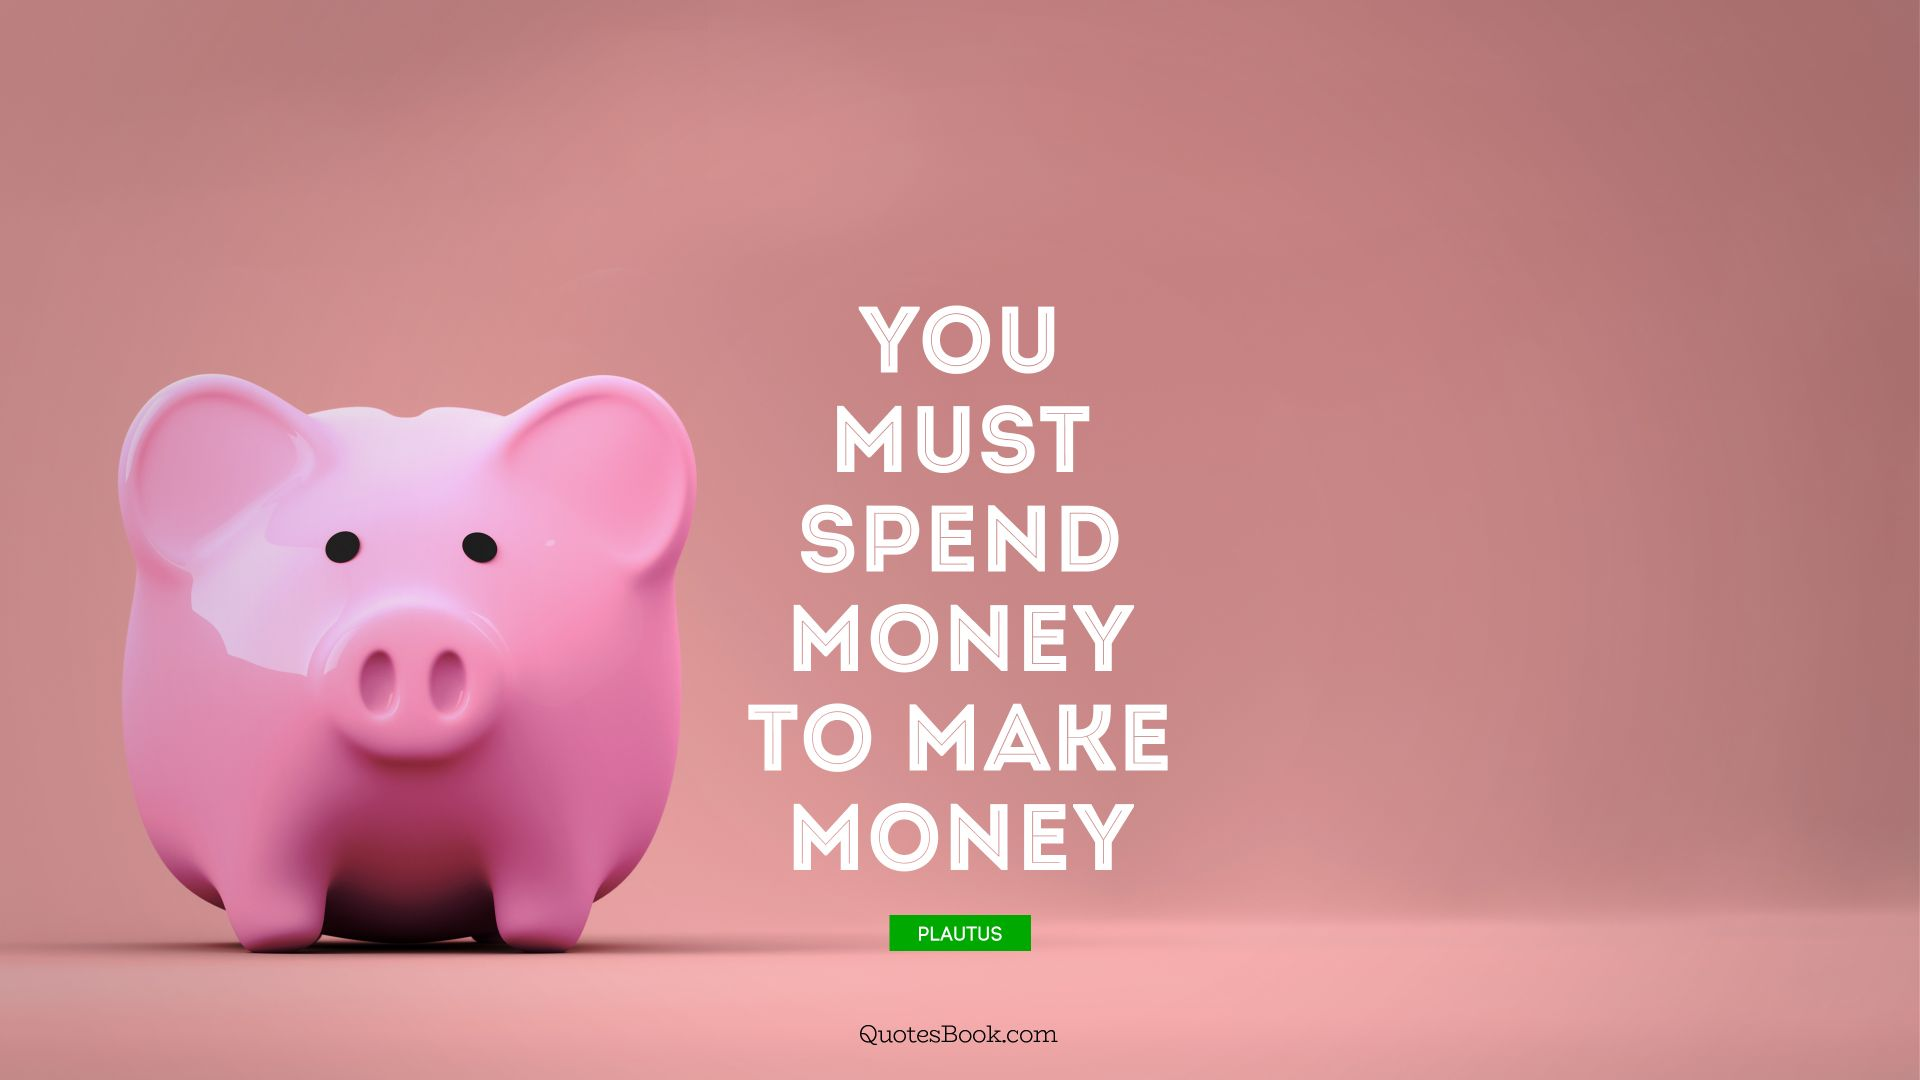 You must spend money to make money. - Quote by Plautus